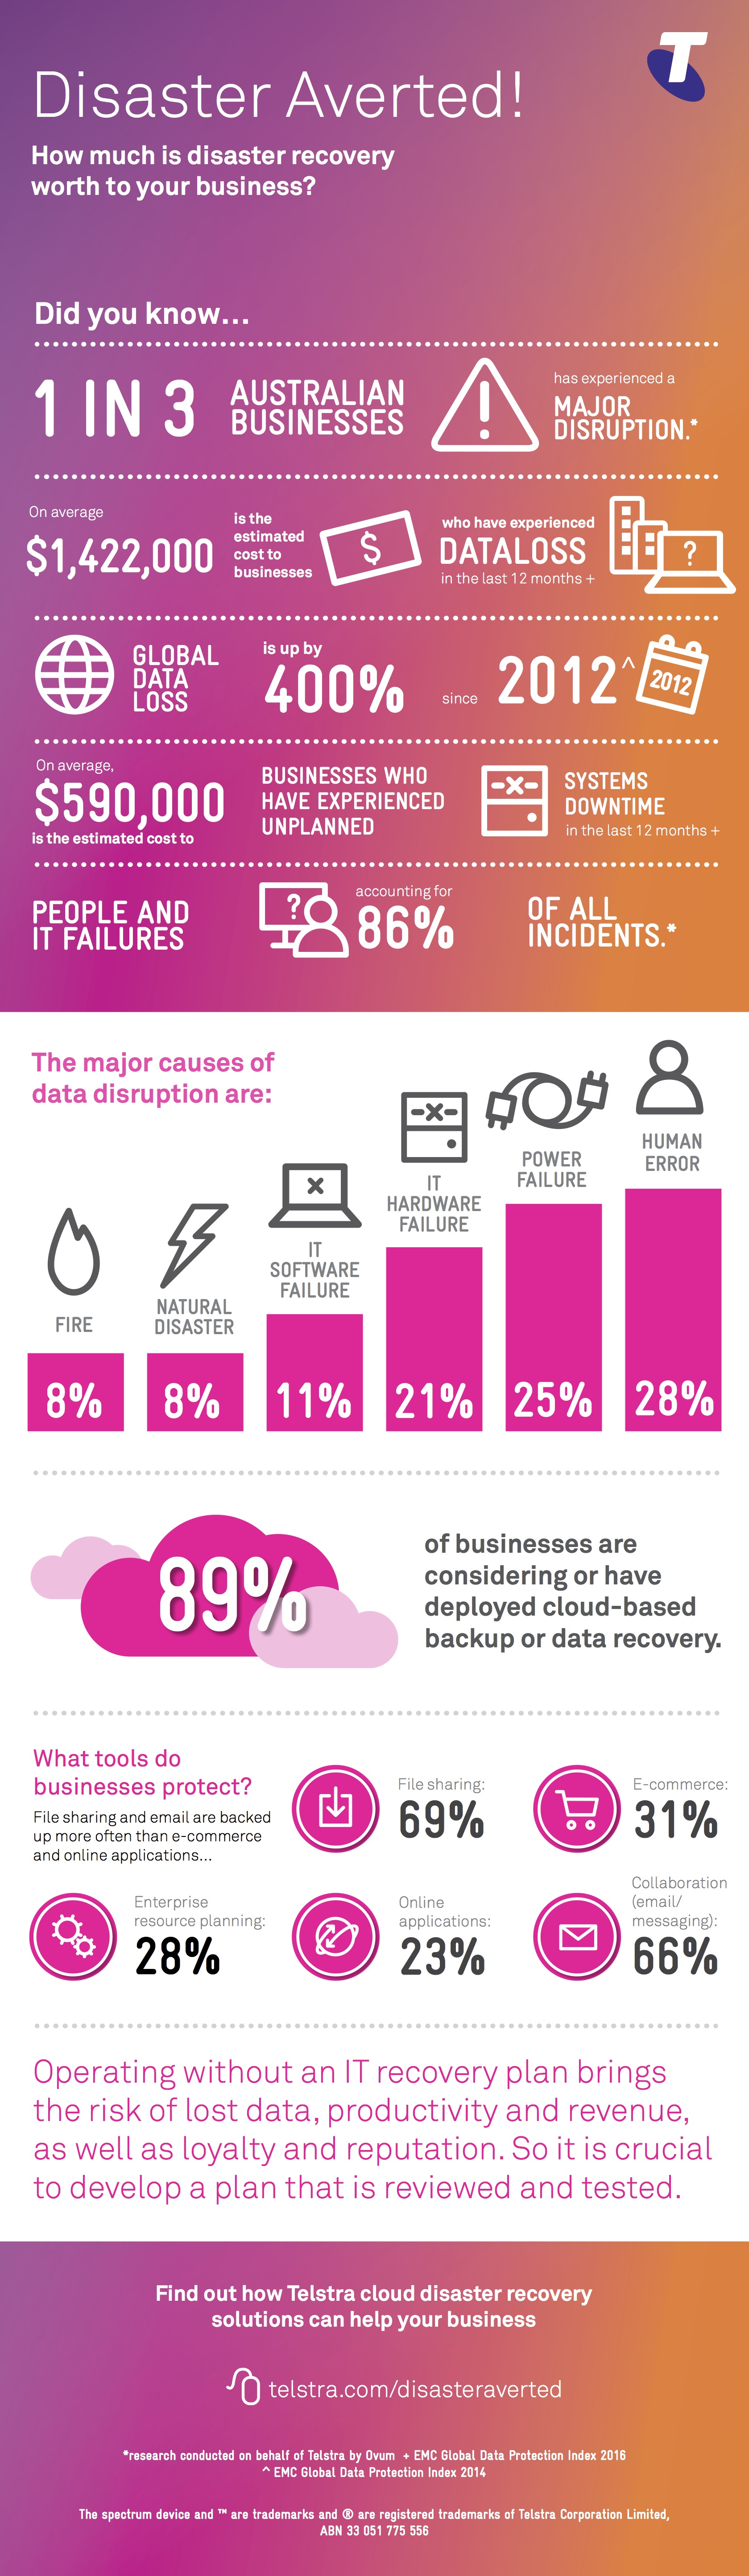 infographic of disaster recovery